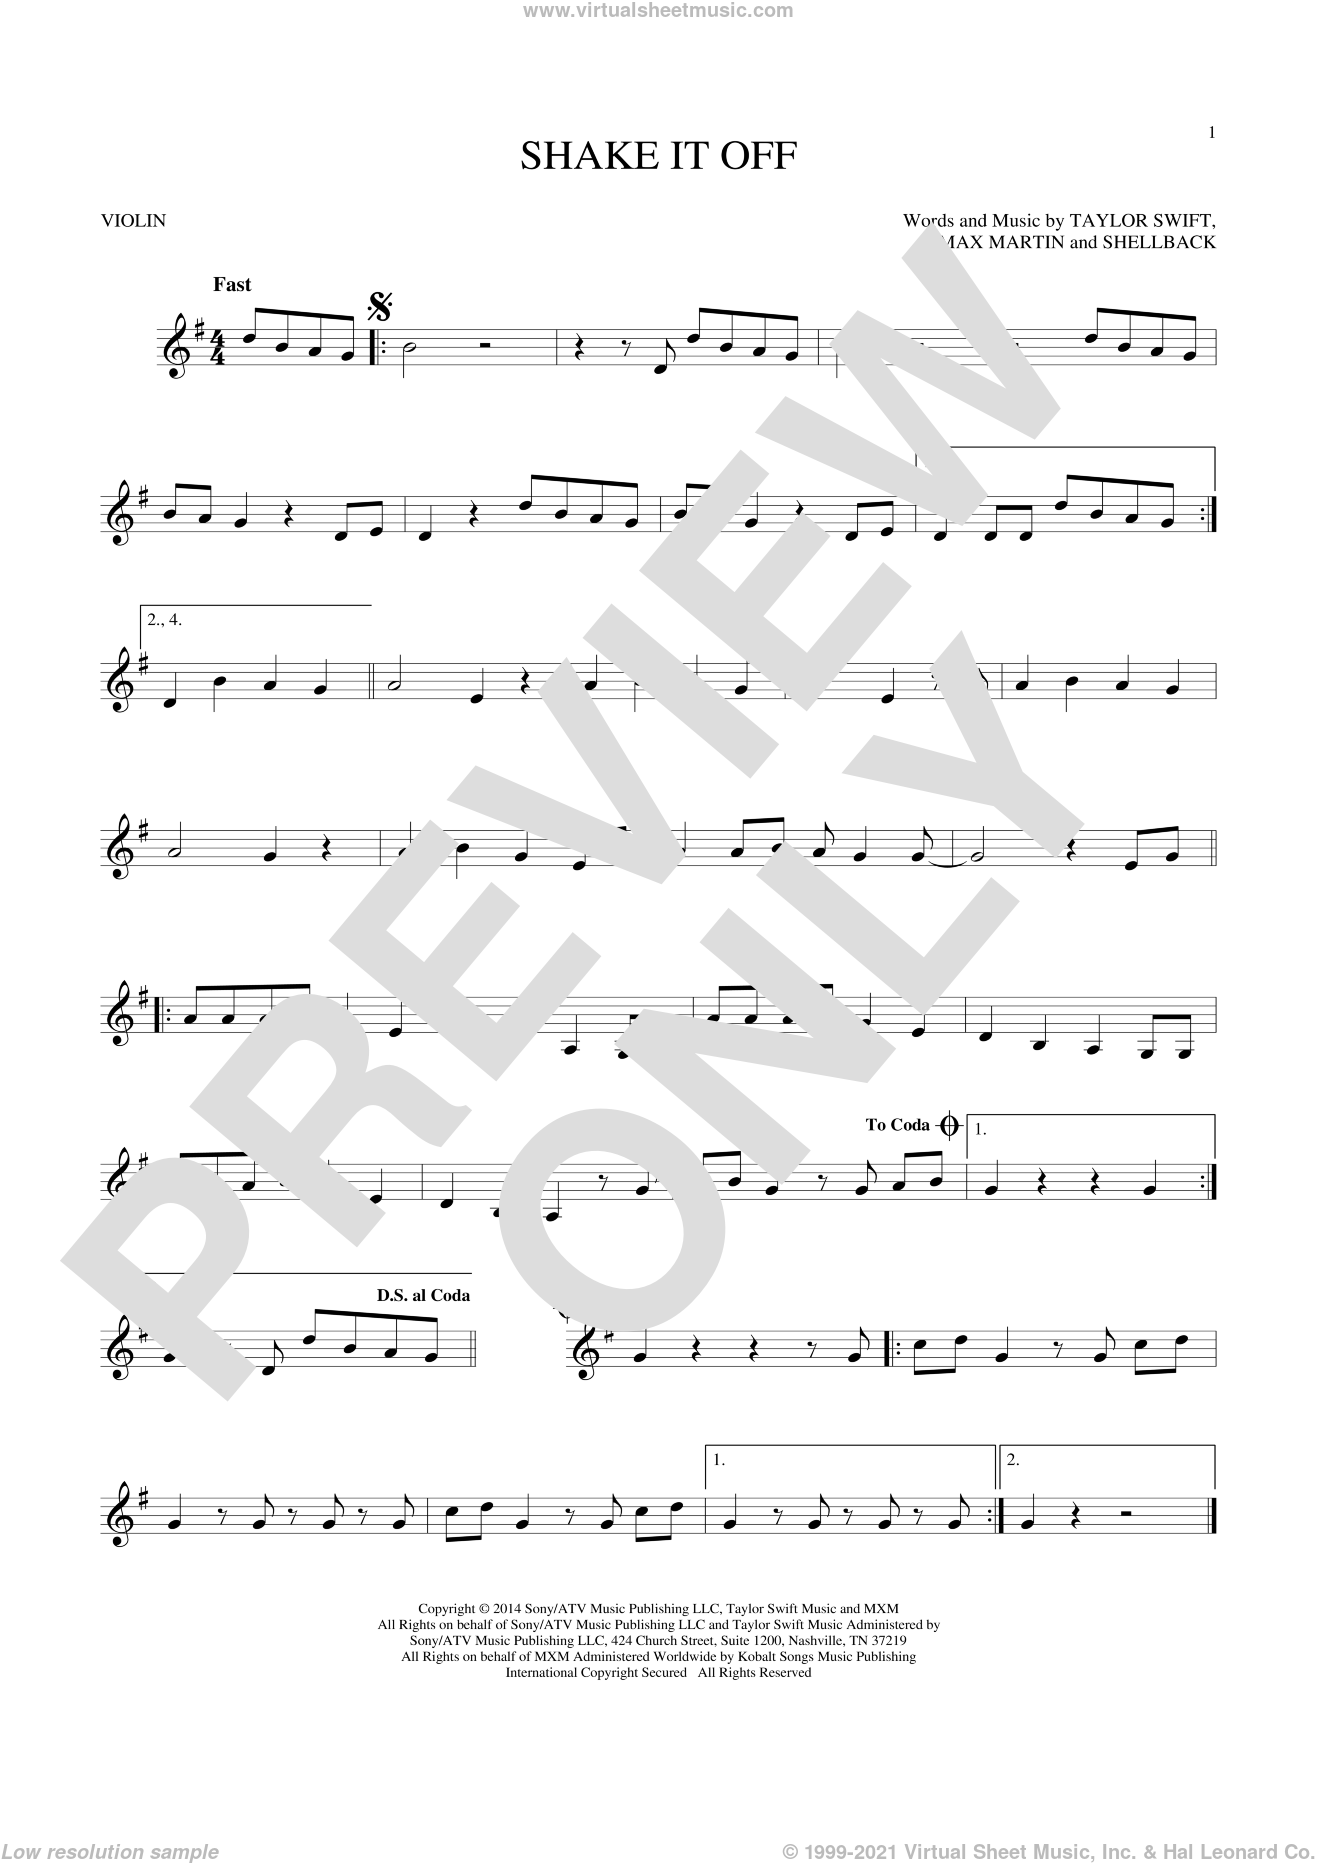 Shake It Off sheet music for violin solo by Taylor Swift, Johan Schuster, Max Martin and Shellback, intermediate skill level